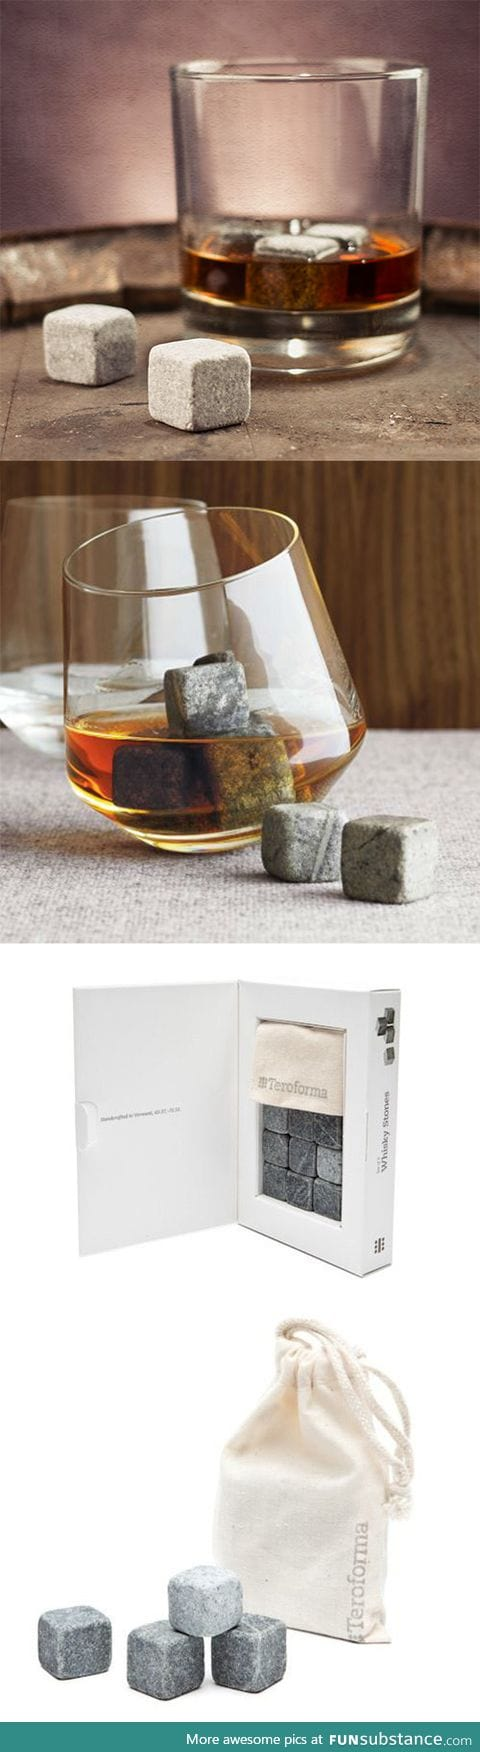 Ice Cube Stones - Make your drinks cold without watering it down